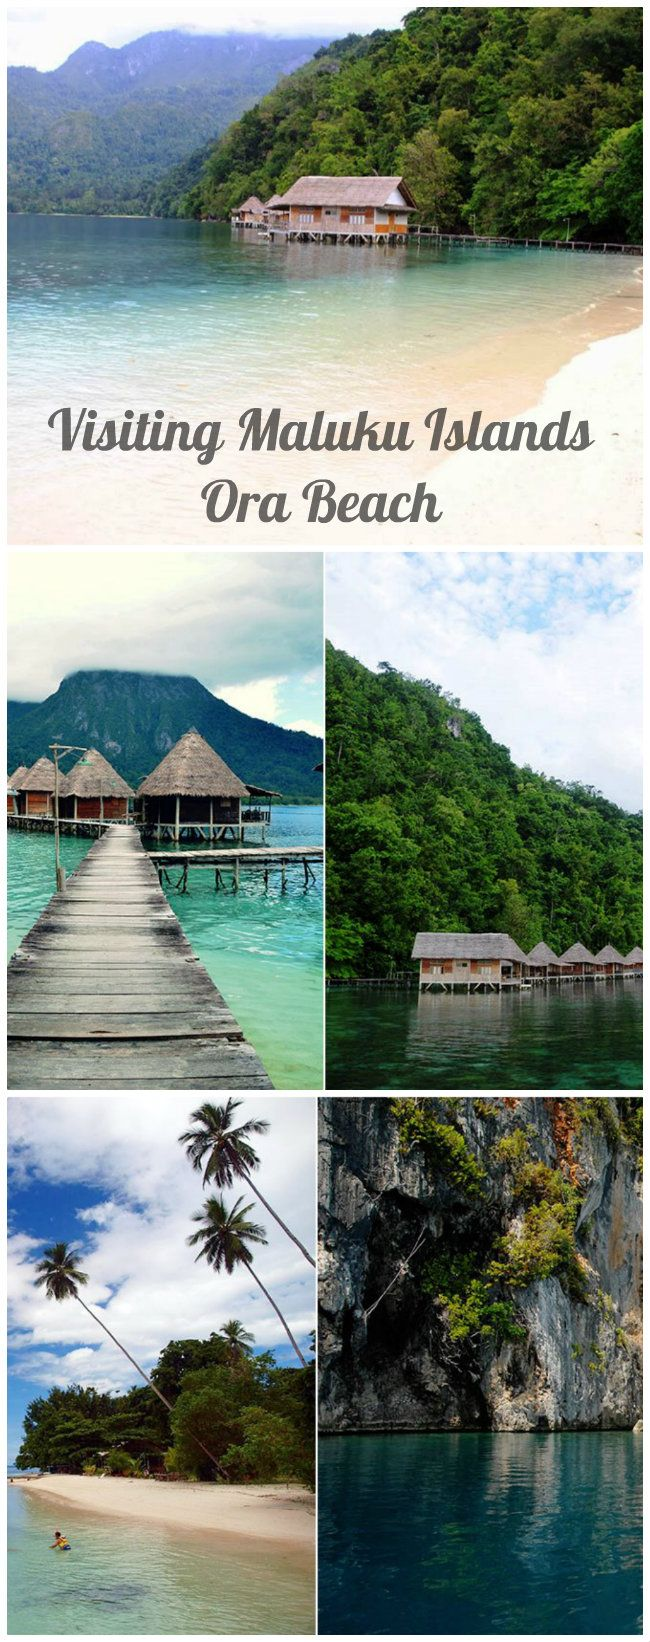 Visiting Maluku Islands Ora Beach